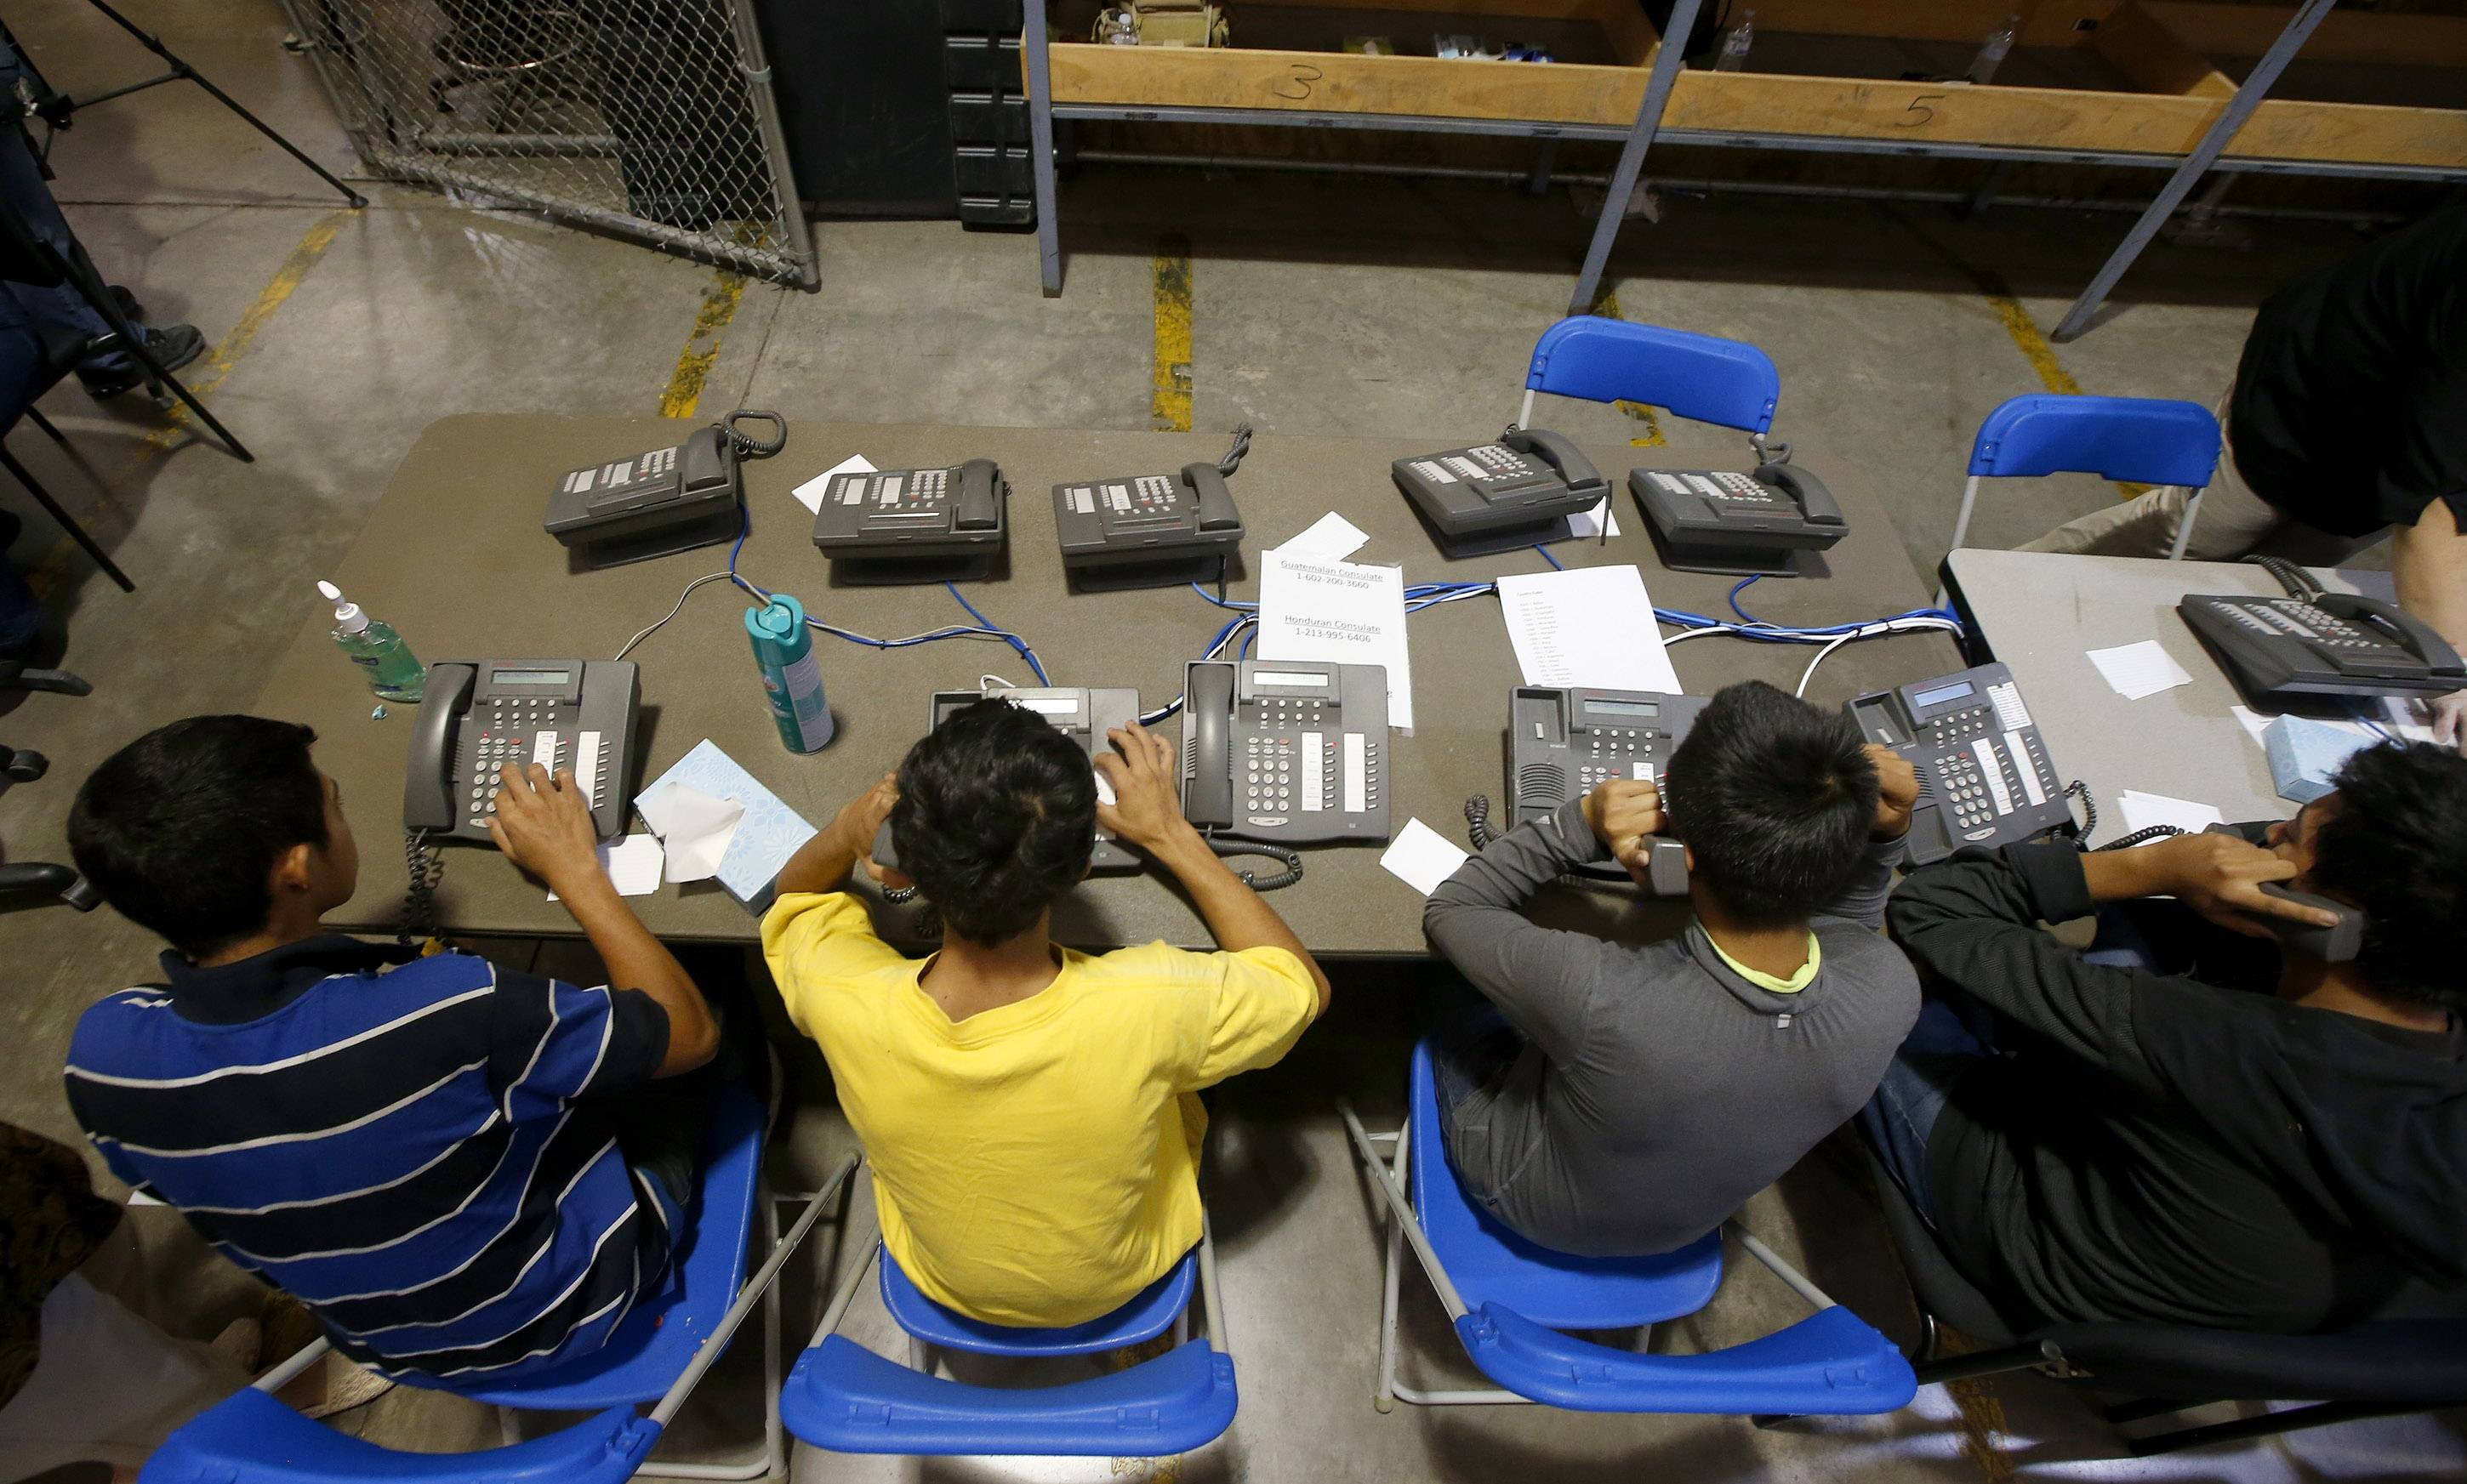 A few boys try to make calls Wednesday as they are joined by hundreds of mostly Central American immigrant children that are being processed and held at the U.S. Customs and Border Protection Nogales Placement Center in Nogales, Ariz.